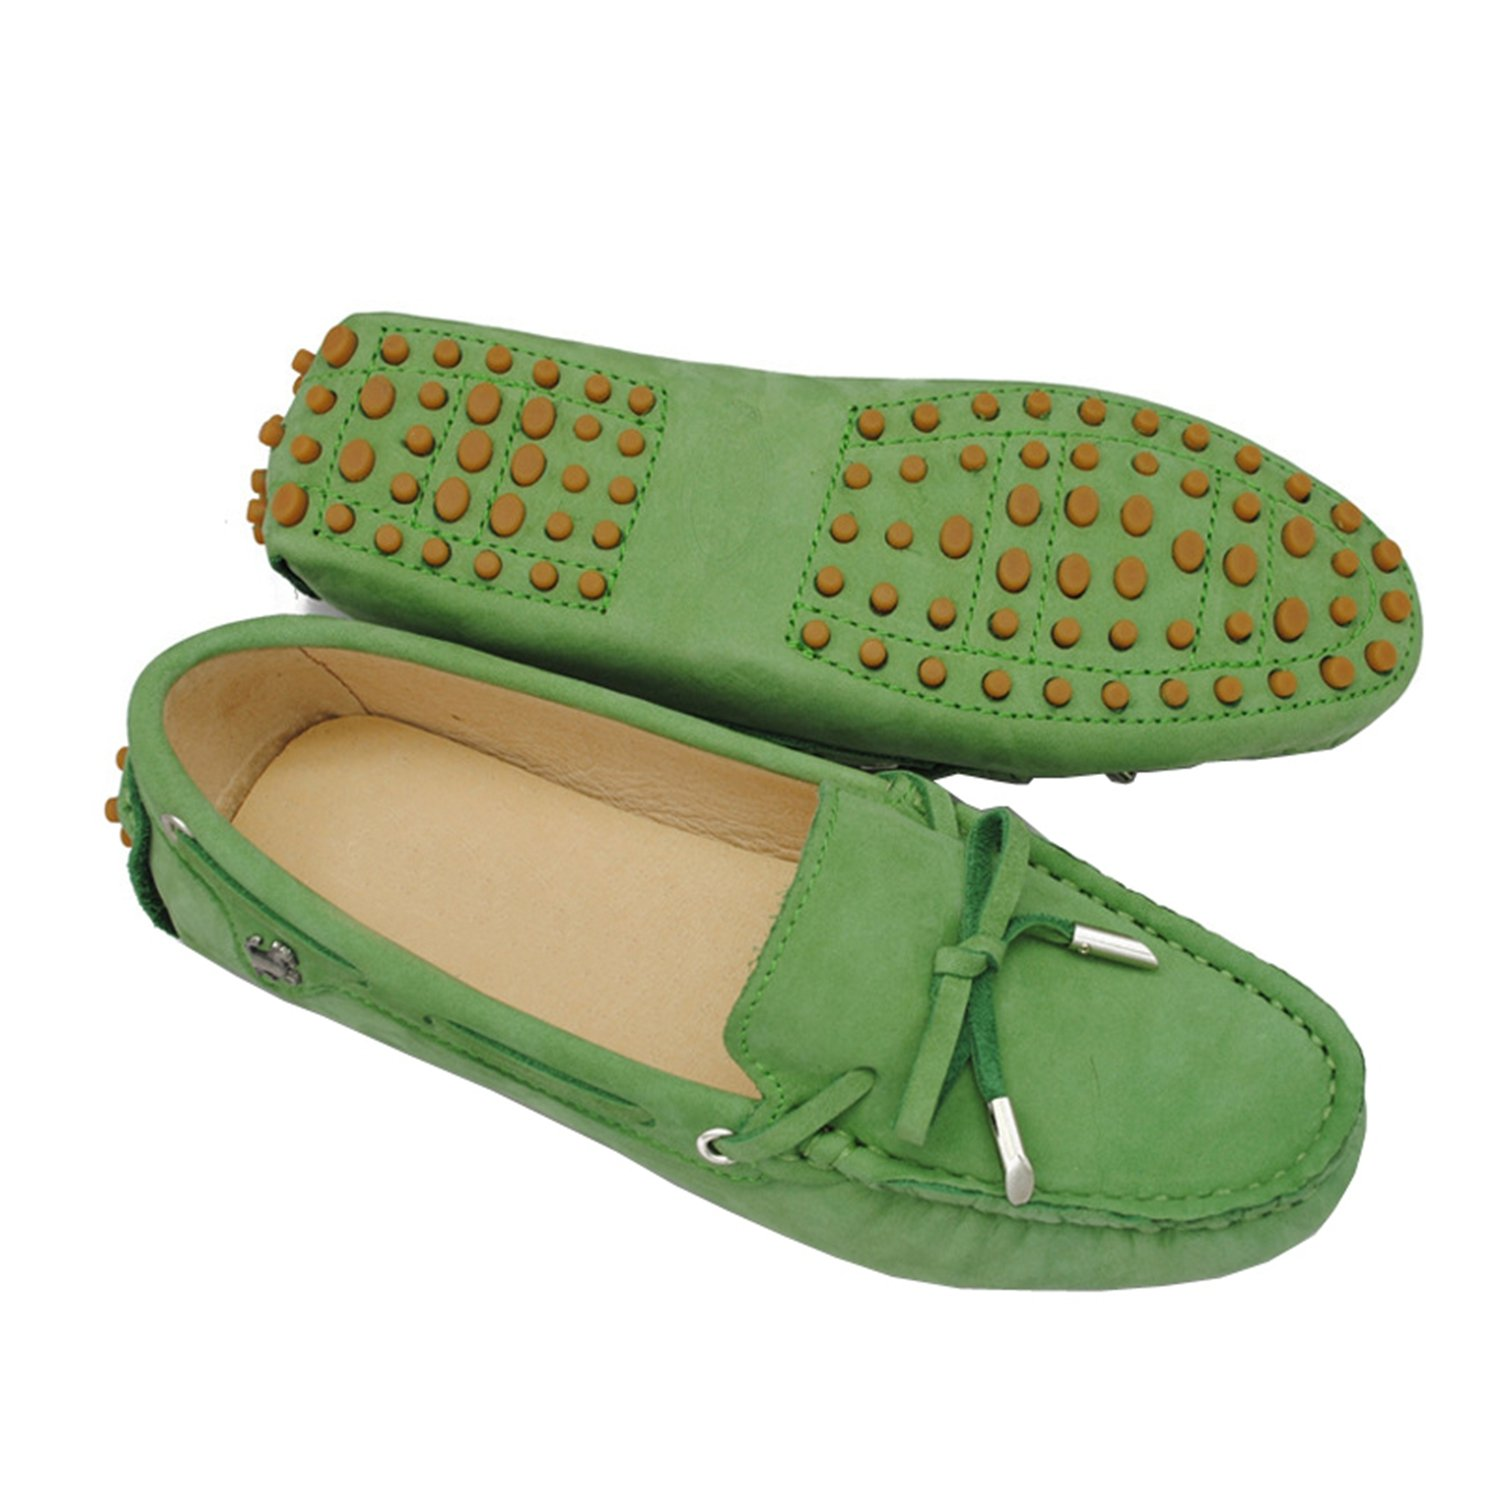 Minitoo Girls da donna in pelle nabuk slip-on barca casual barca slip-on scarpe ballerine mocassini Algae Green ceff11